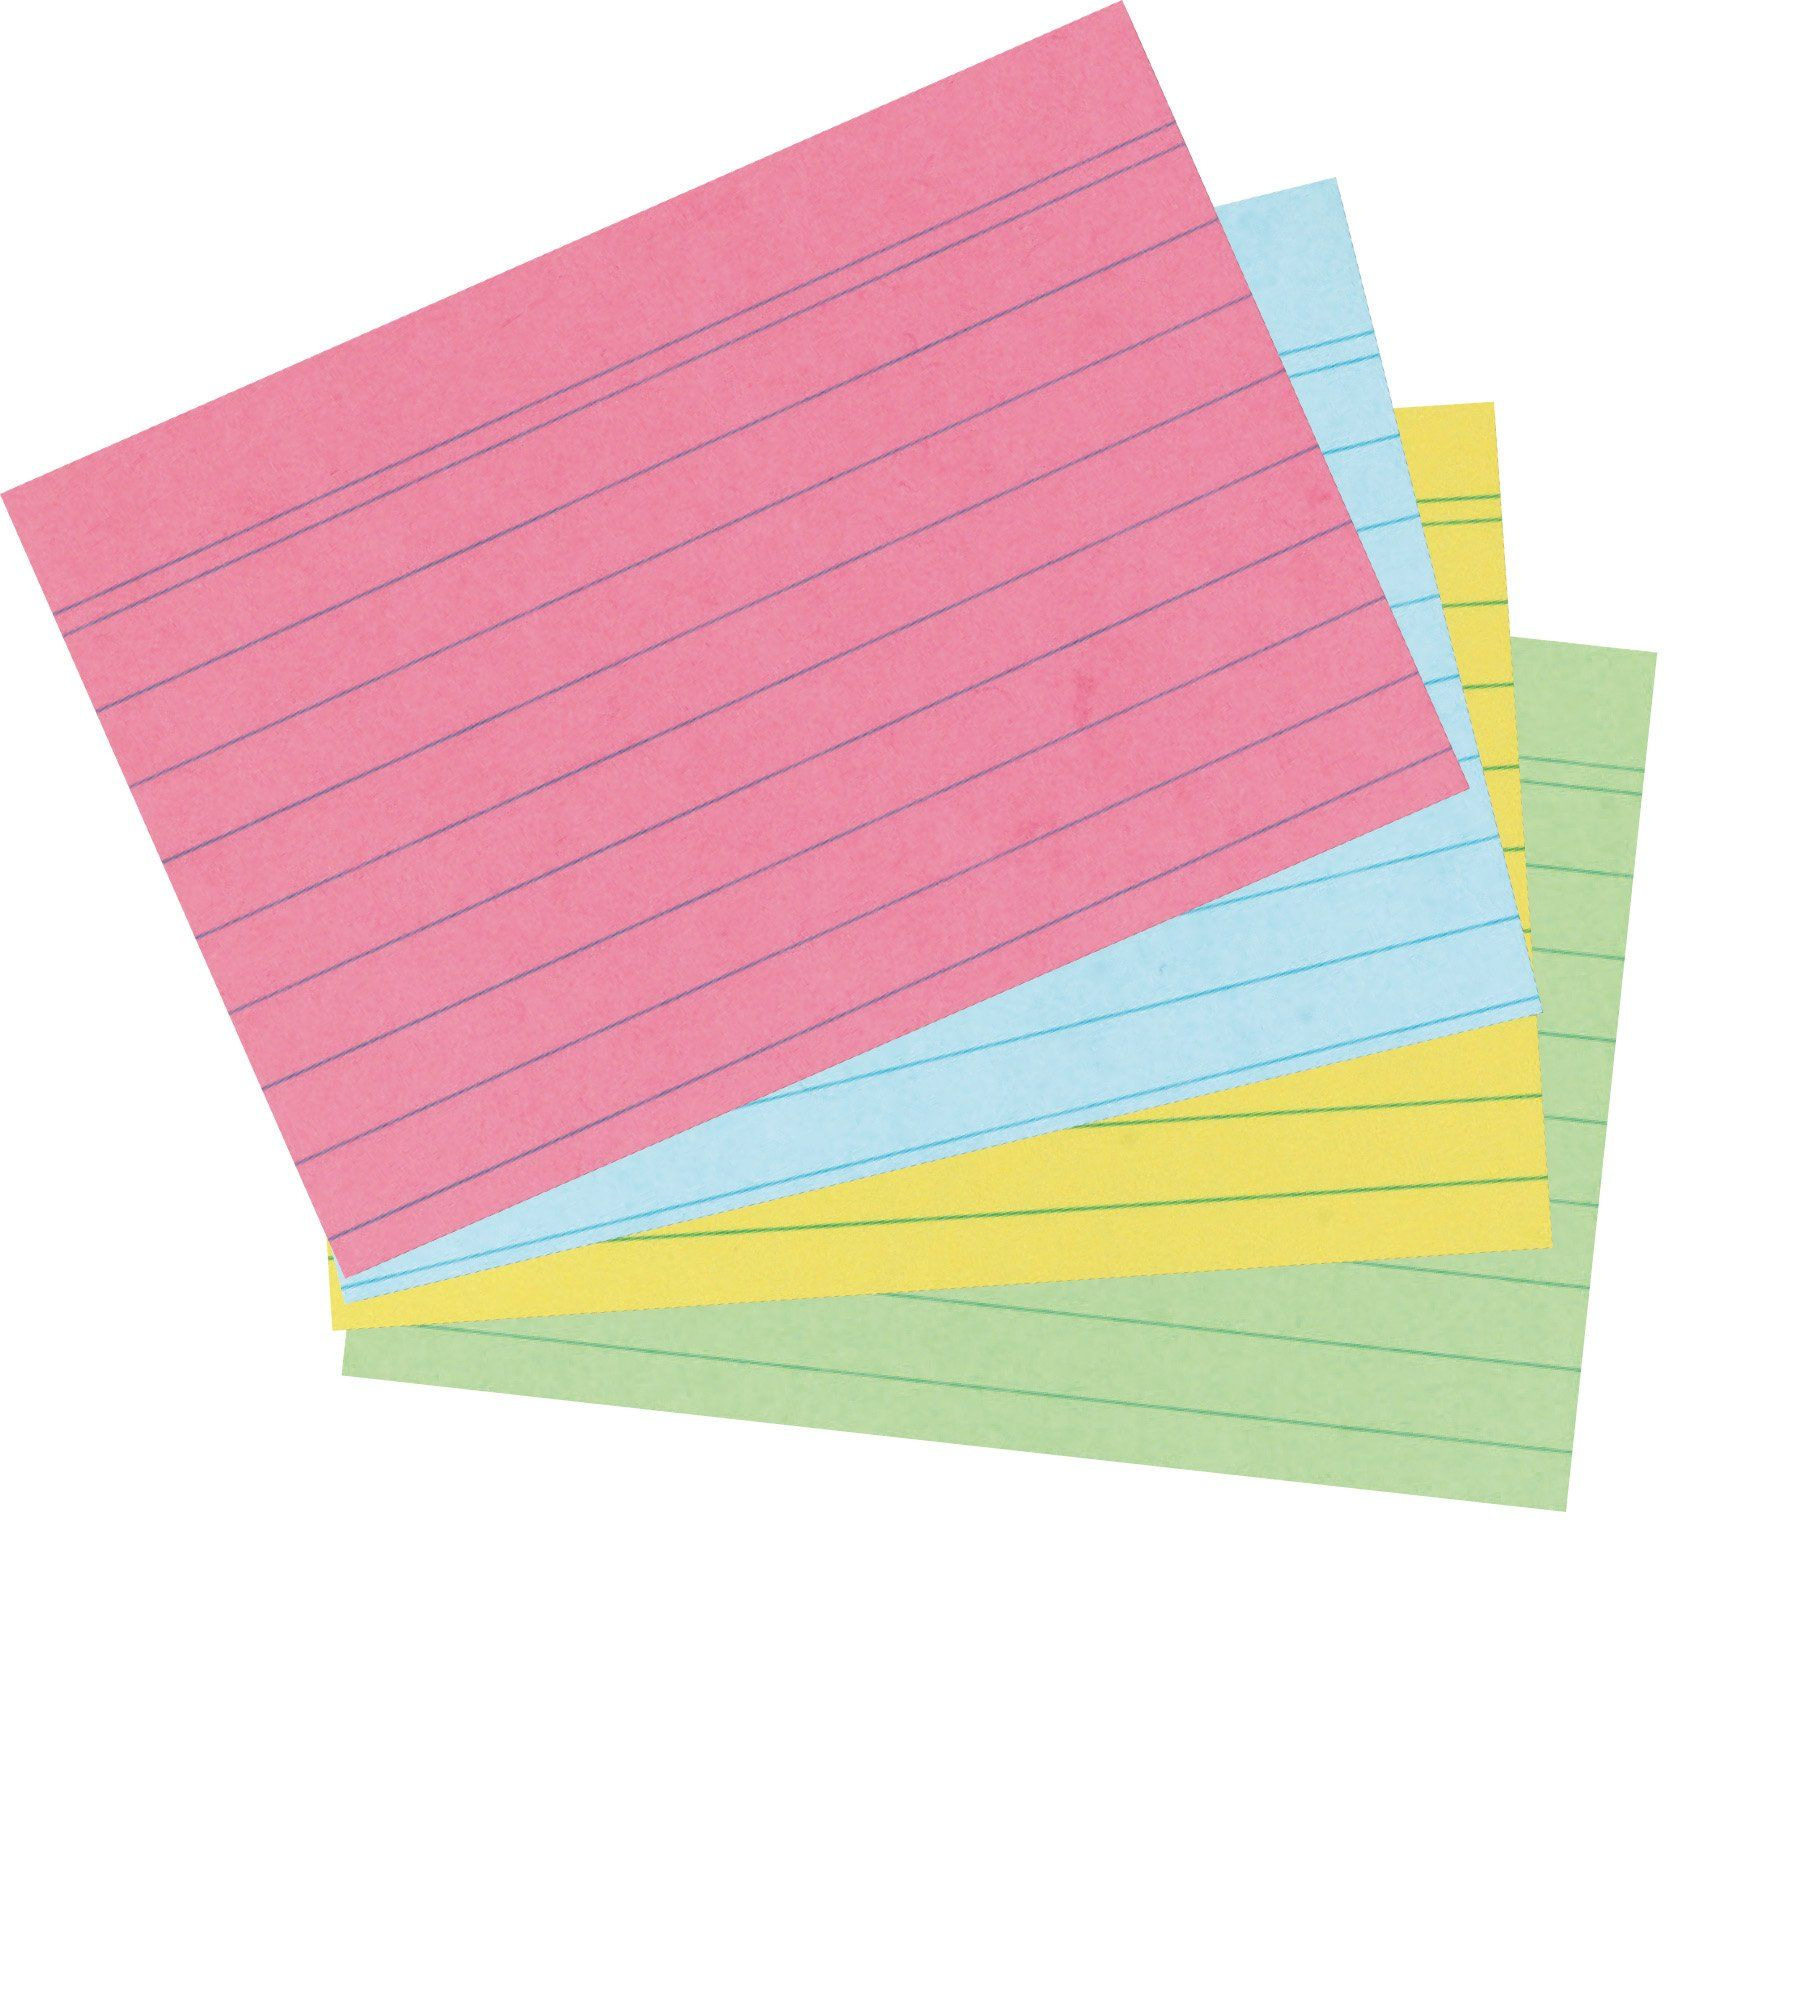 Herlitz A6 Ruled Record Card - Assorted Colours (200 Pieces): Amazon.co.uk: Office Products